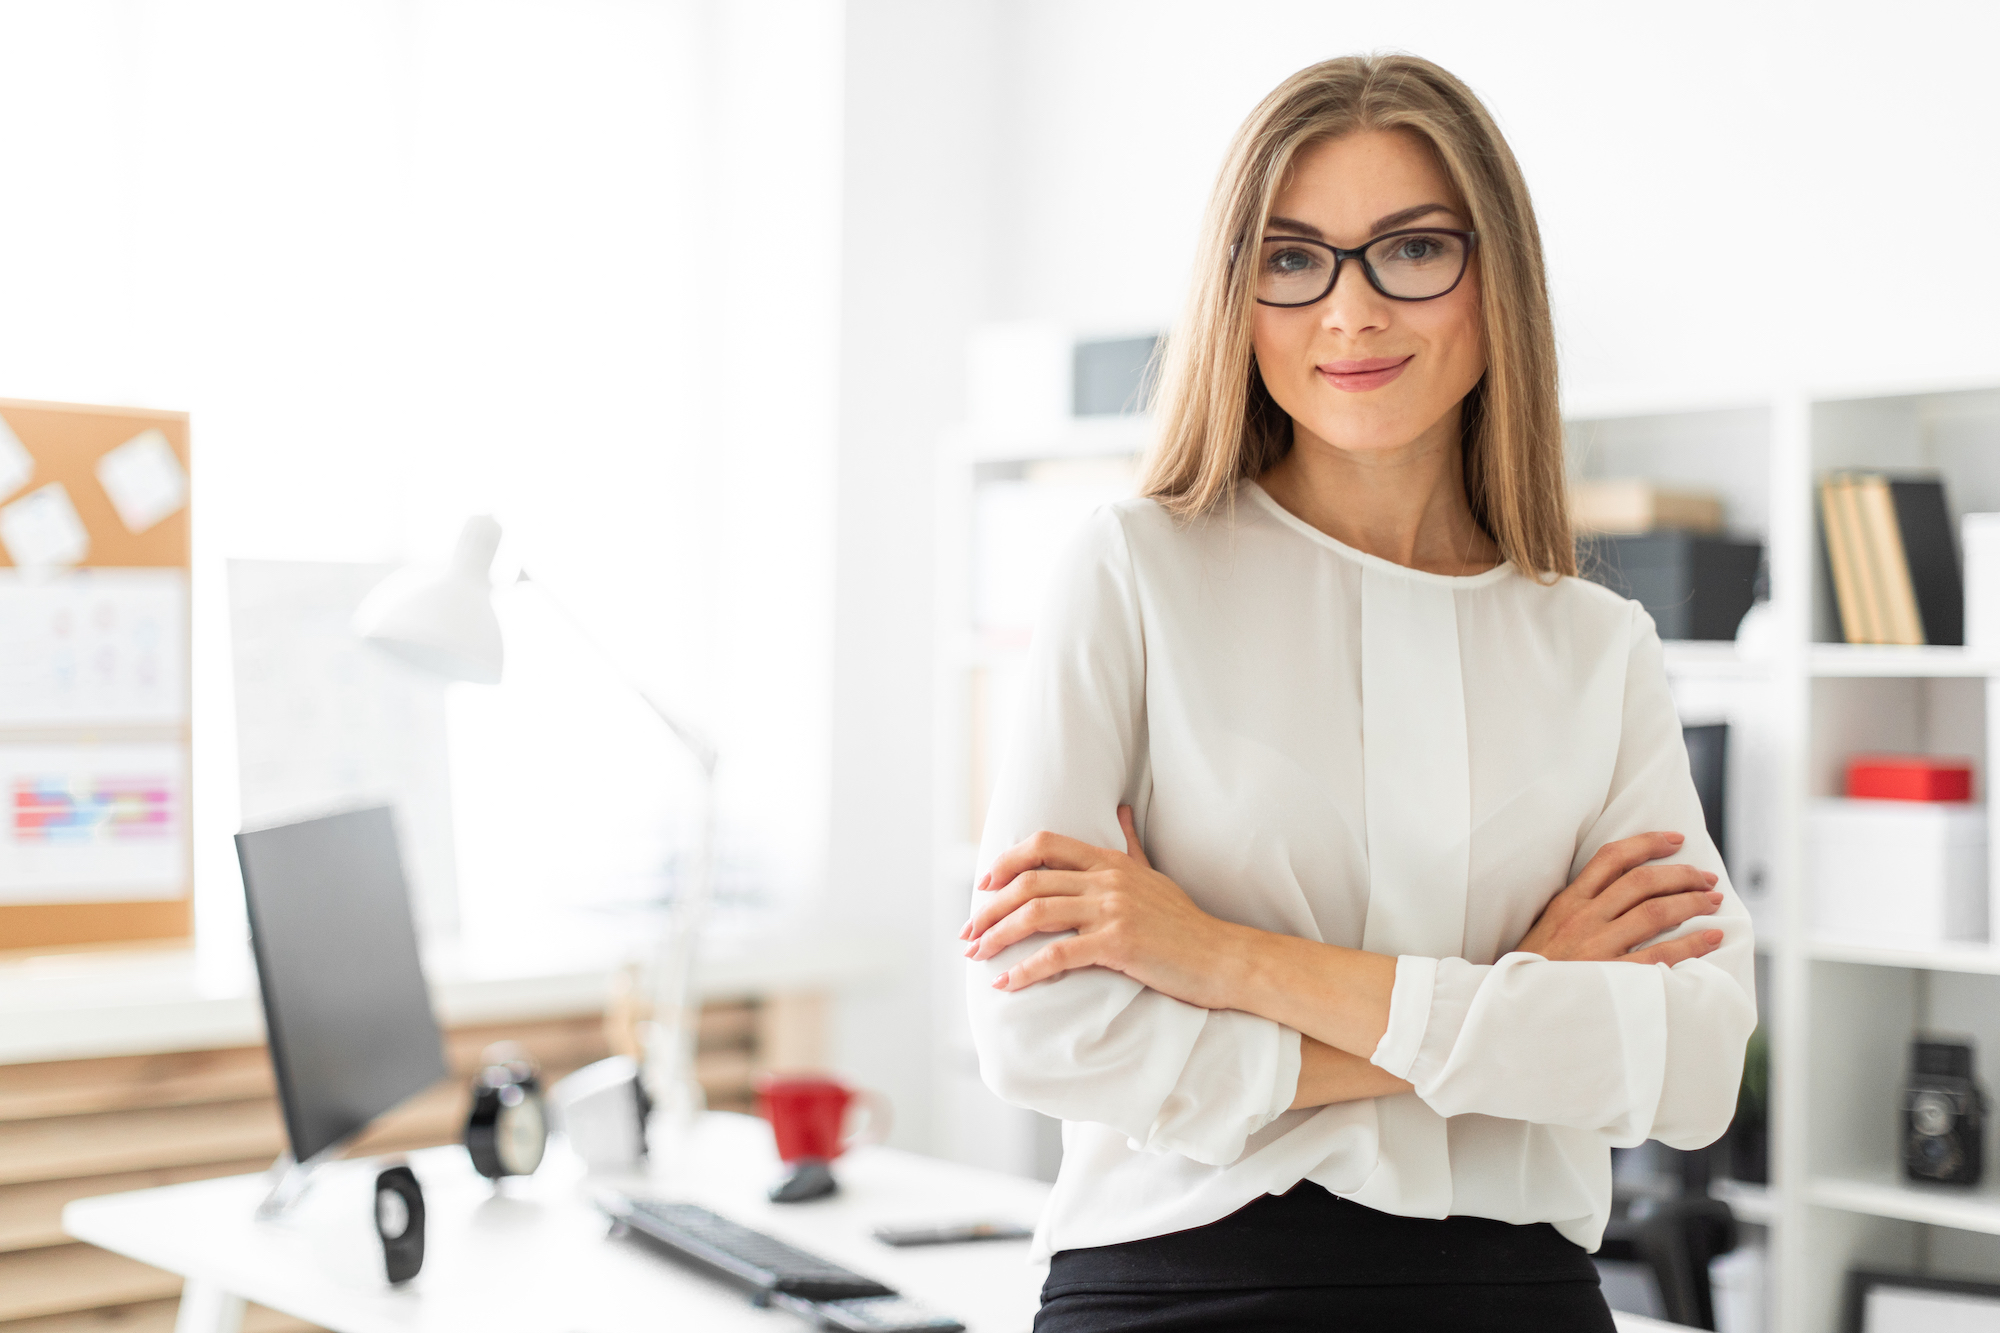 Professional woman standing in office with arms crossed